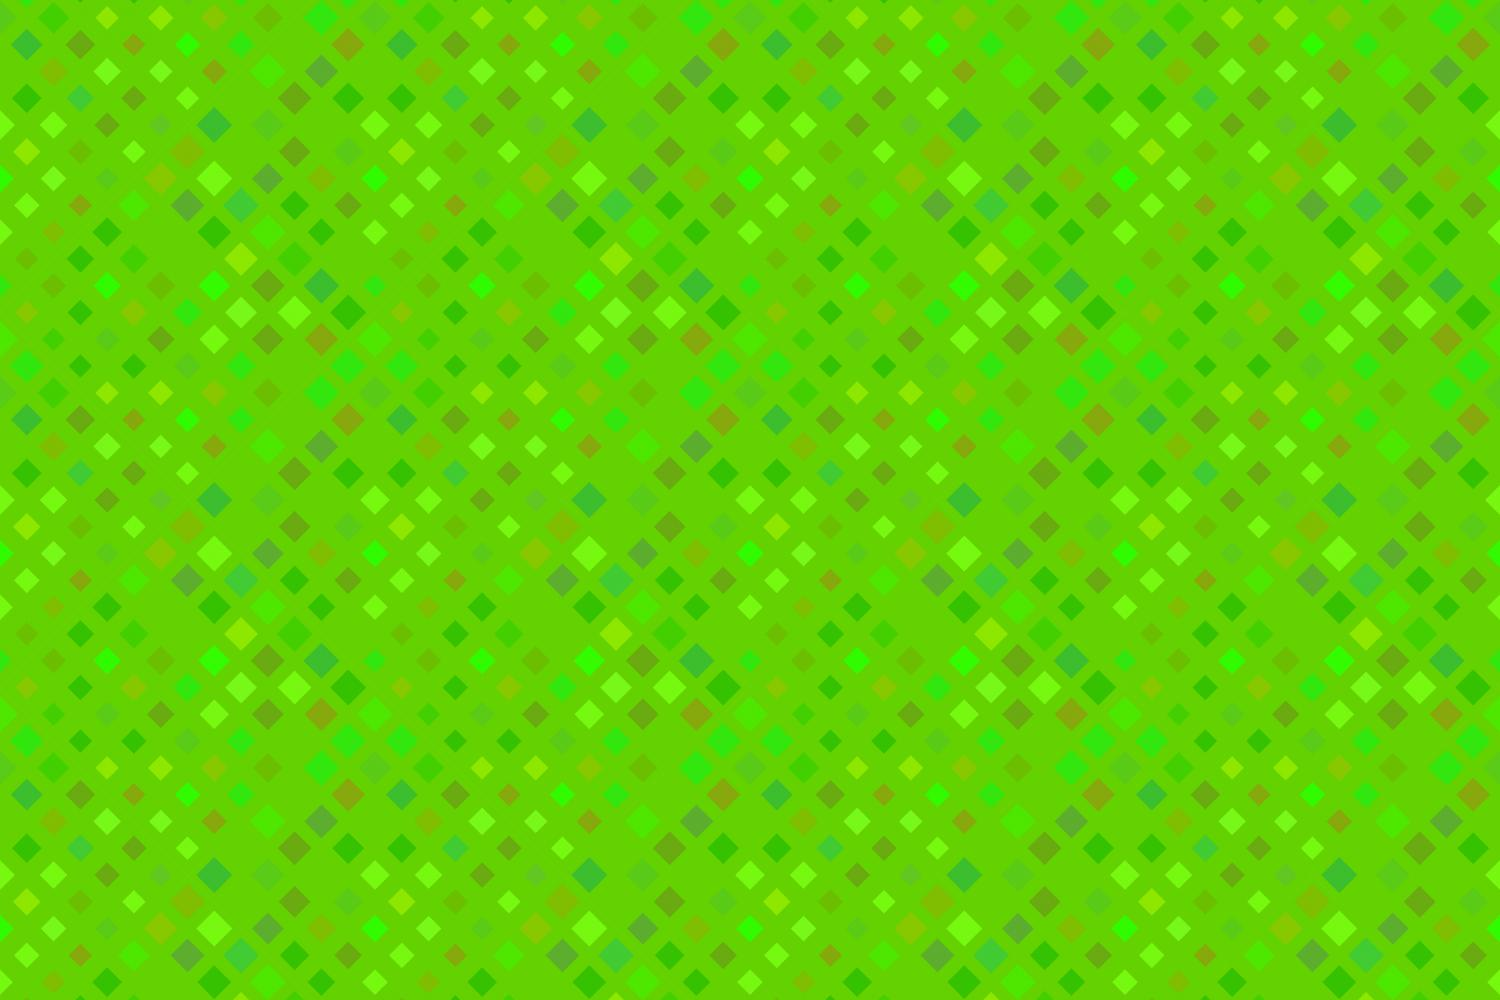 24 Seamless Green Square Patterns example image 23